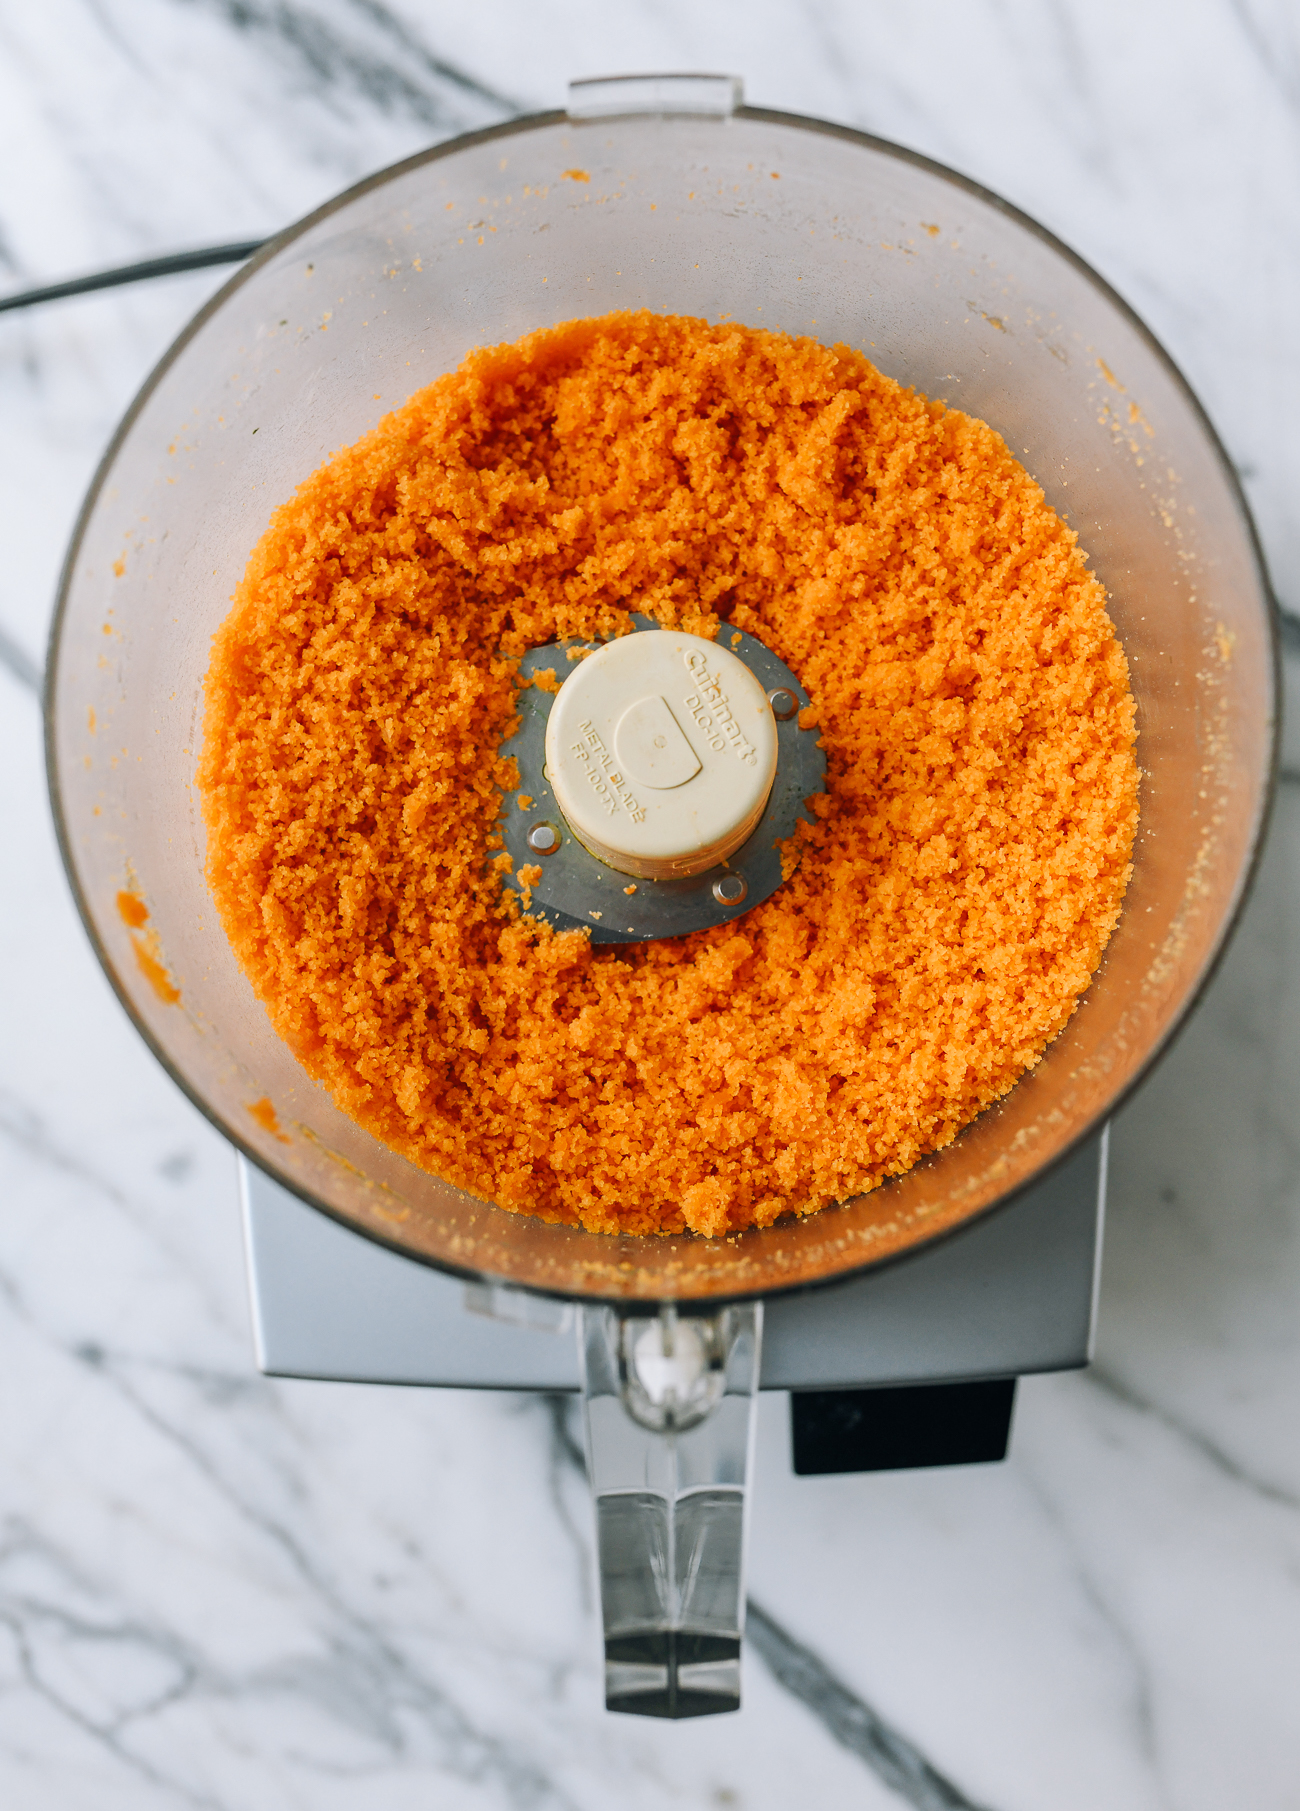 baked salted egg yolks, ground into a powder in a food processor